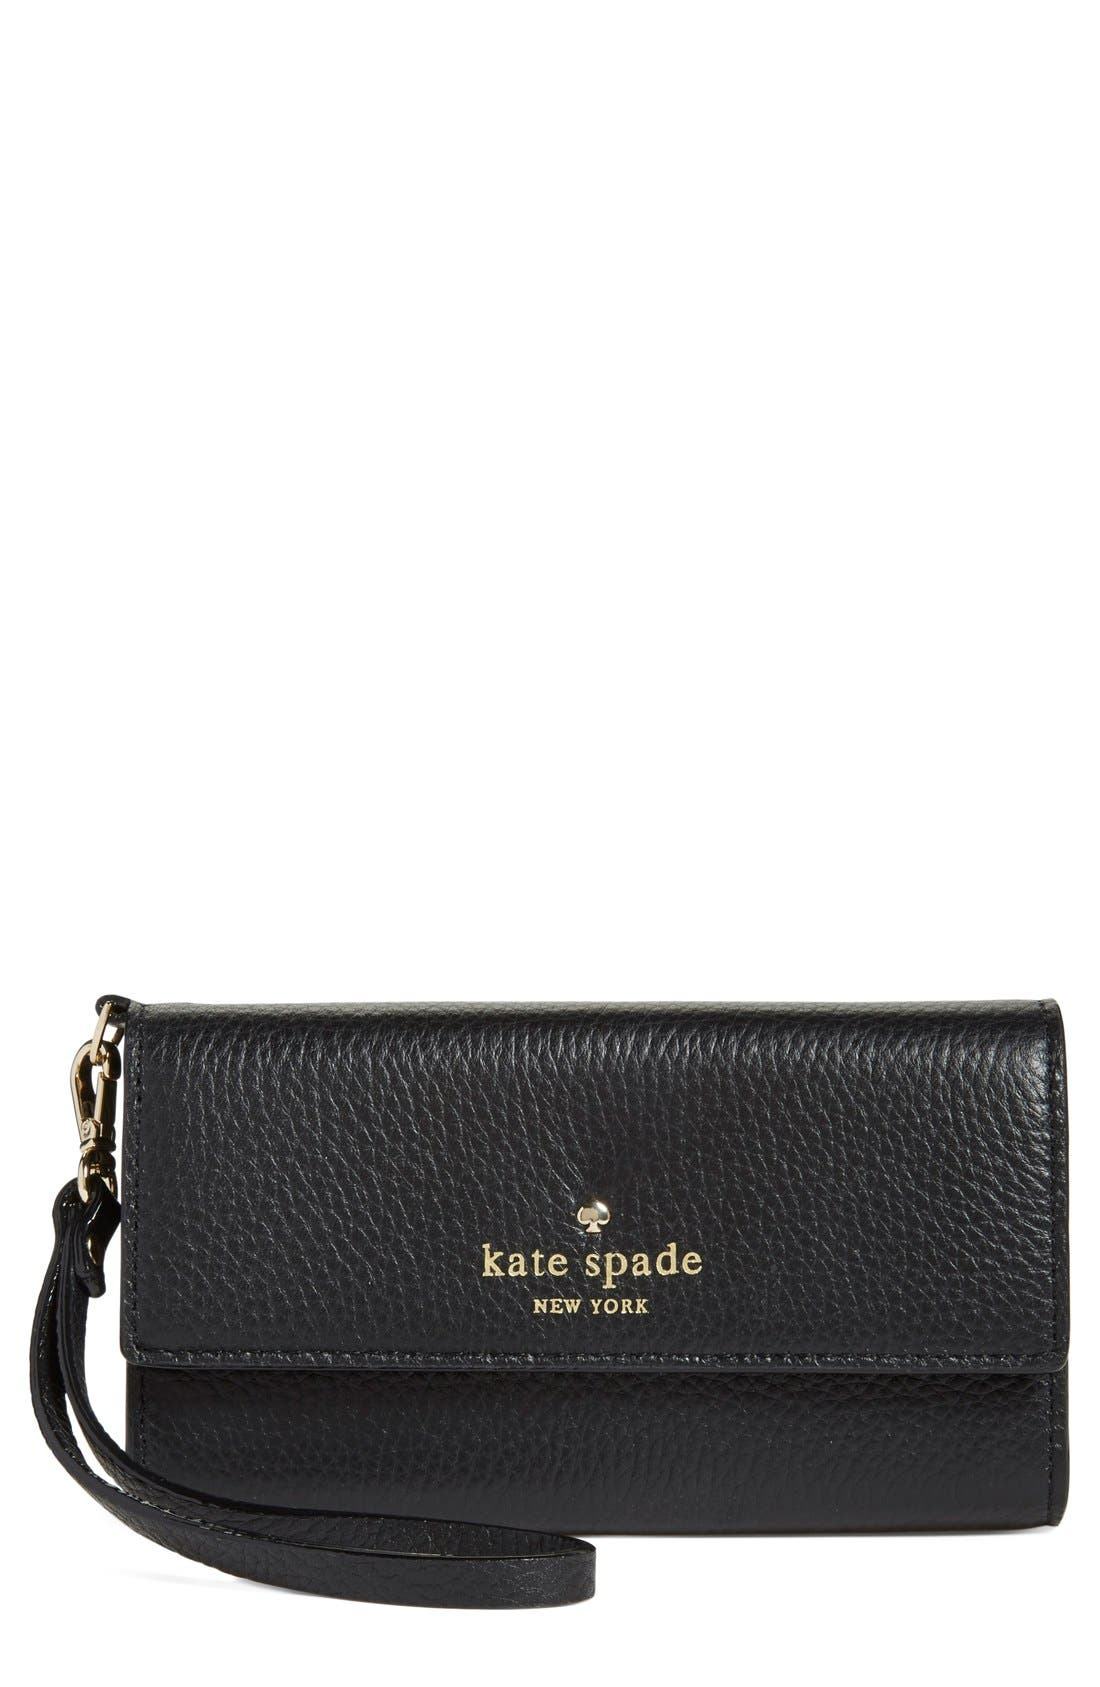 'spencer court' leather phone wristlet,                         Main,                         color, 001